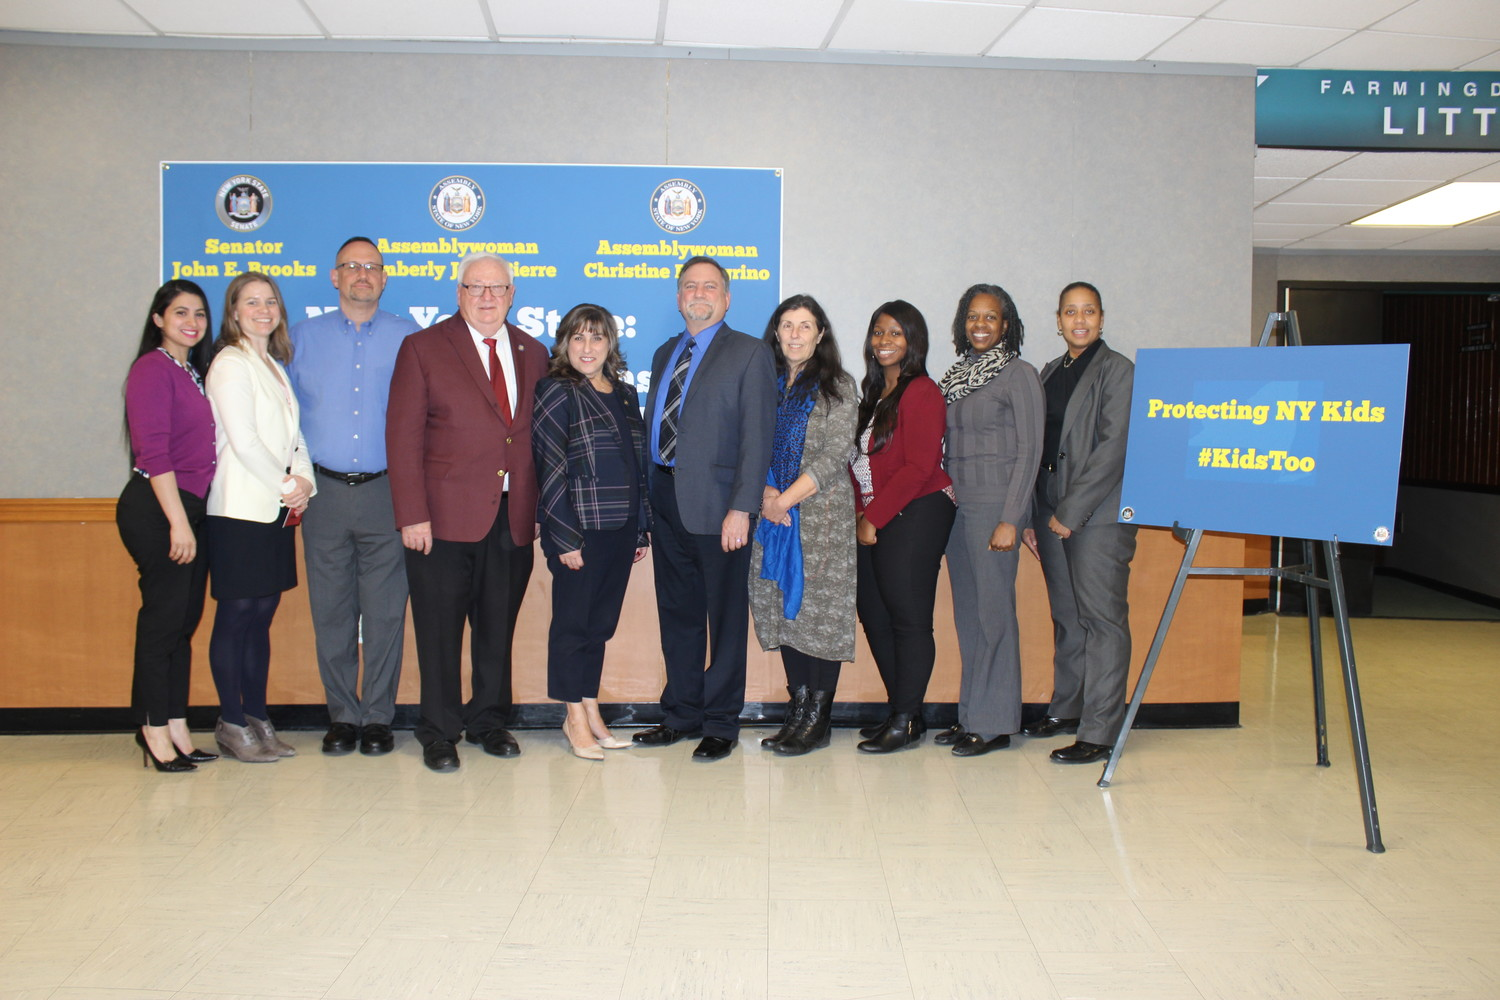 Local activists called for the passage of the Child Victims Act at an event hosted by State Sen. John Brooks on March 8 at Farmingdale State College. Above were Ana Wagner, left, Bridie Farrell, Harold Siering, Brooks, Sen. Christine Pellegrino, James Leander, Naomi Barasch, Lasheca Lewis, Jackie Gordon and Kim Bryson.